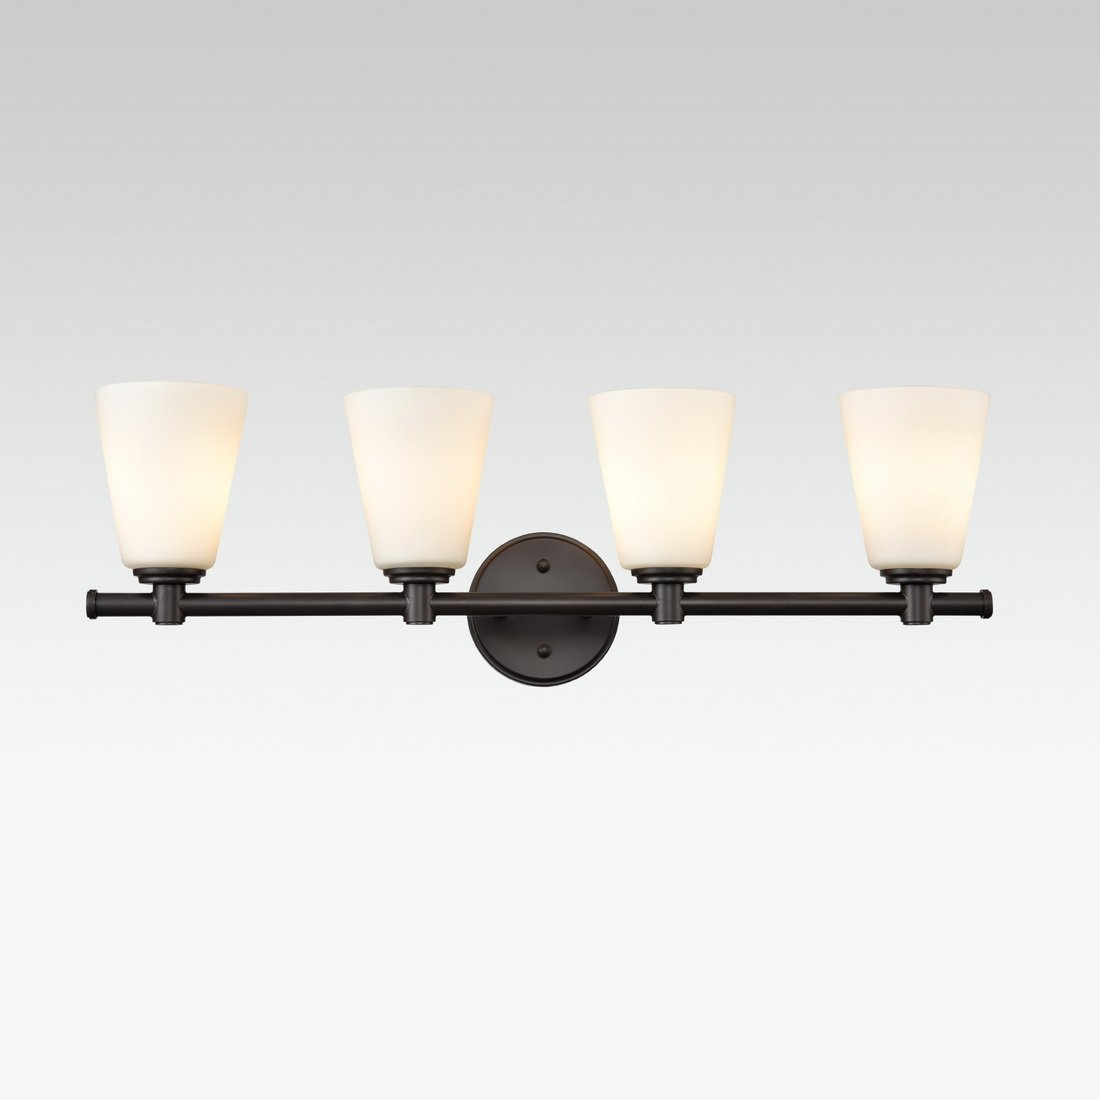 AXILAND Vanity Lighting 4 Light Oil Rubbed Bronze Wall Sconce with Opal Glass Shade by AXILAND (Image #7)